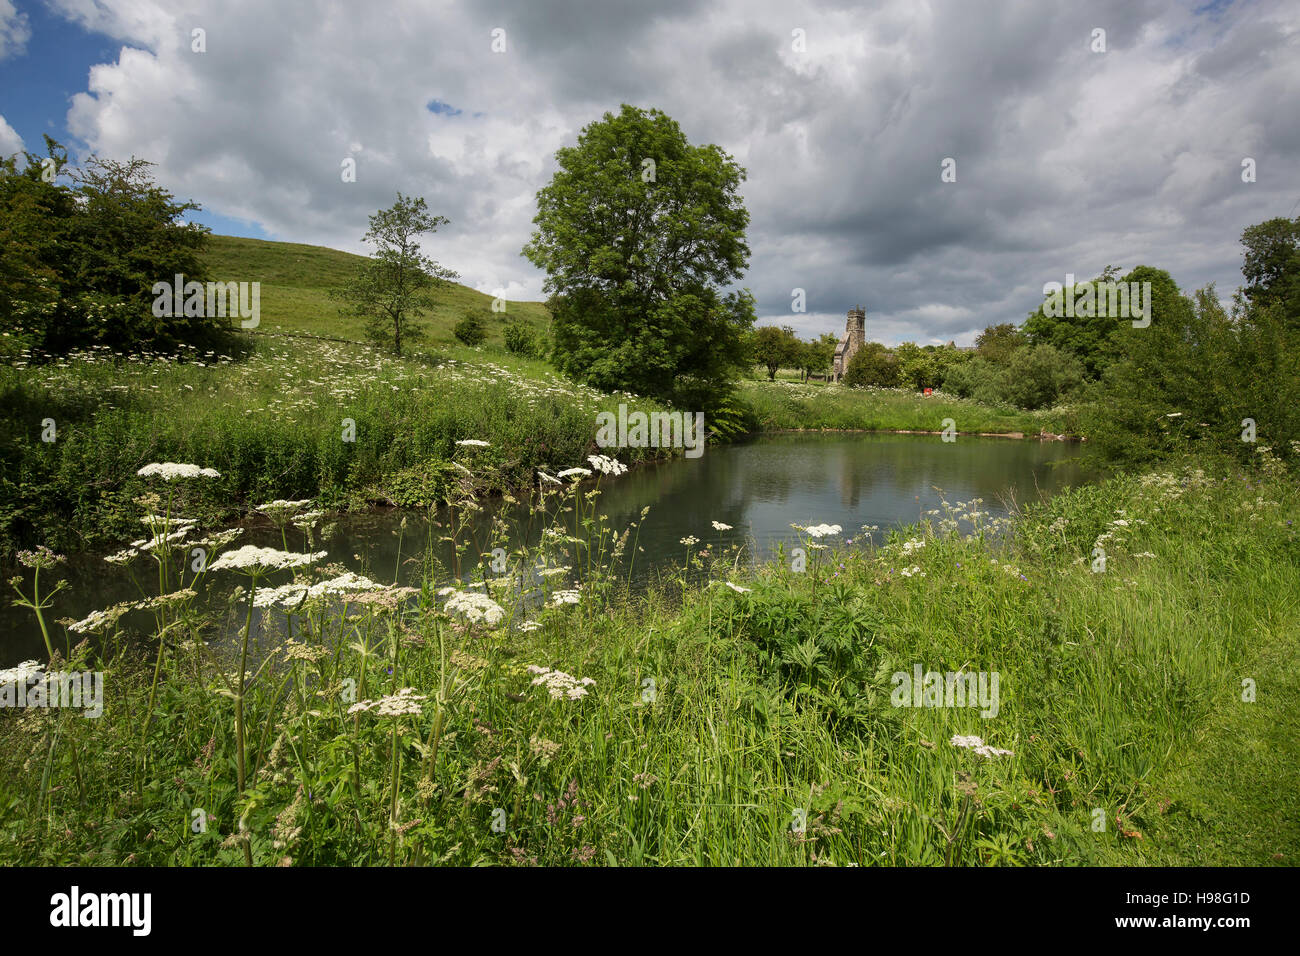 Wharram Percy deserted medieval village, Yorkshire Wolds south of Malton - Stock Image